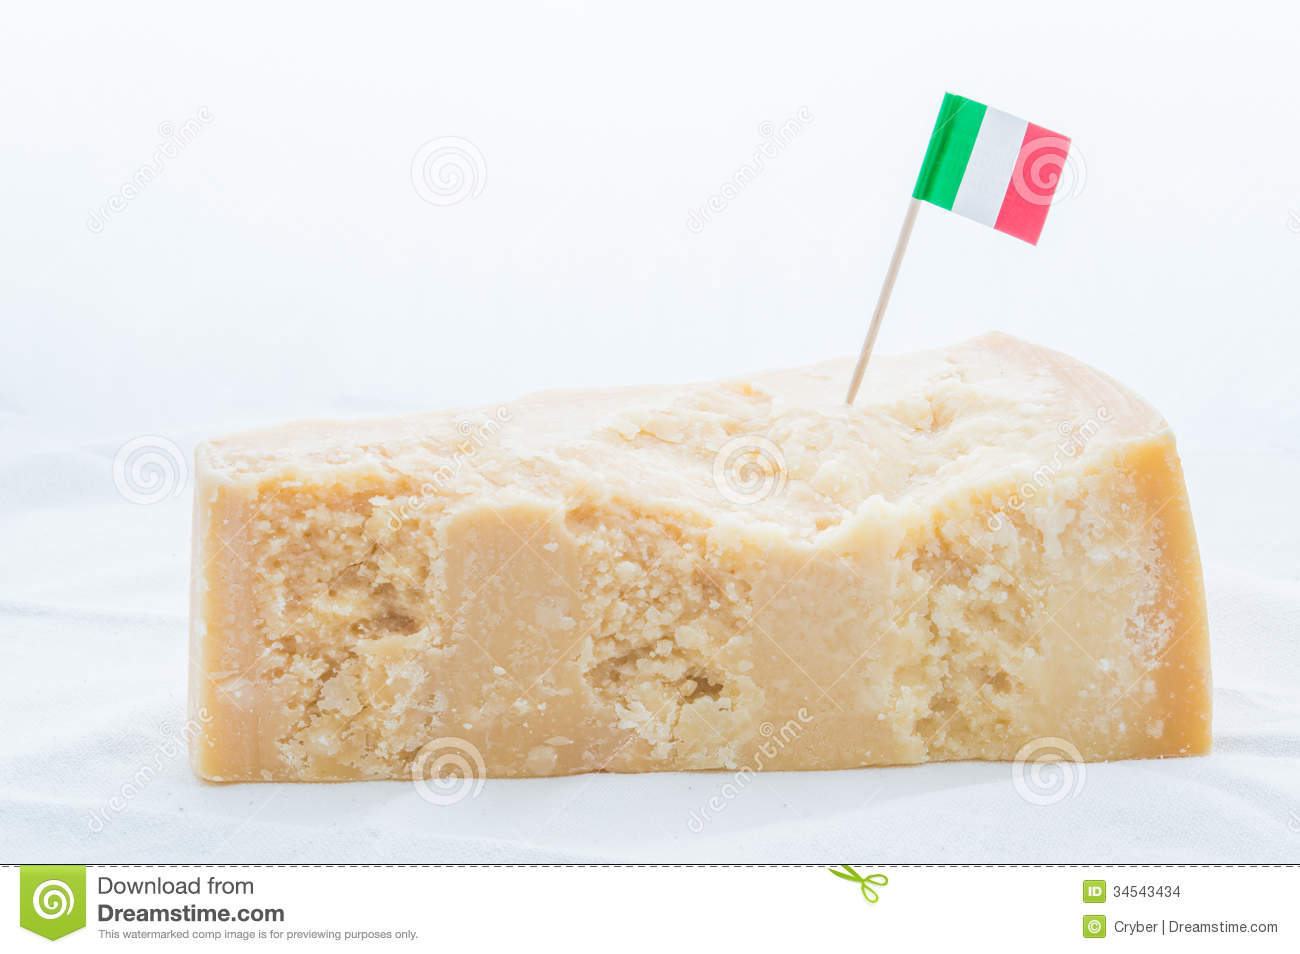 how to cut parmesan cheese